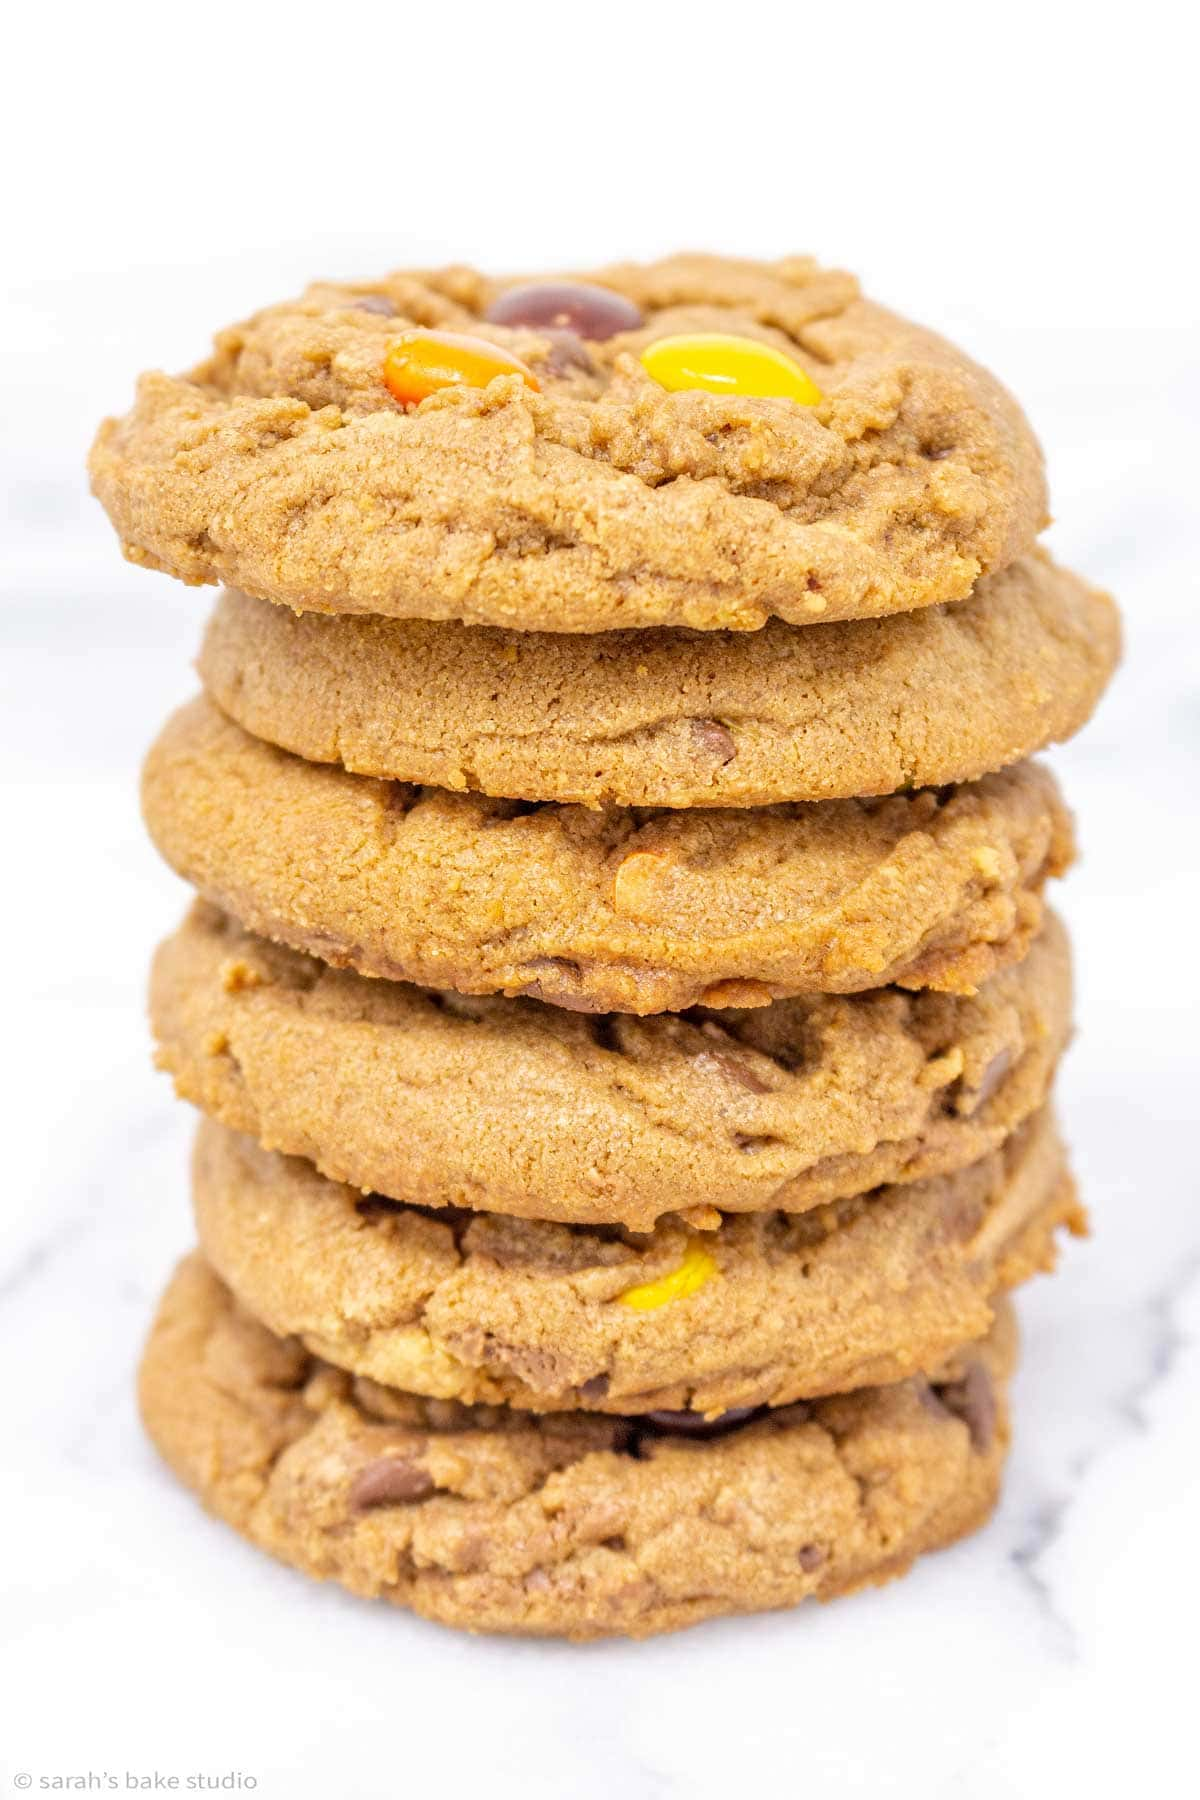 a stacked tower of Reese's chocolate peanut butter cookies.